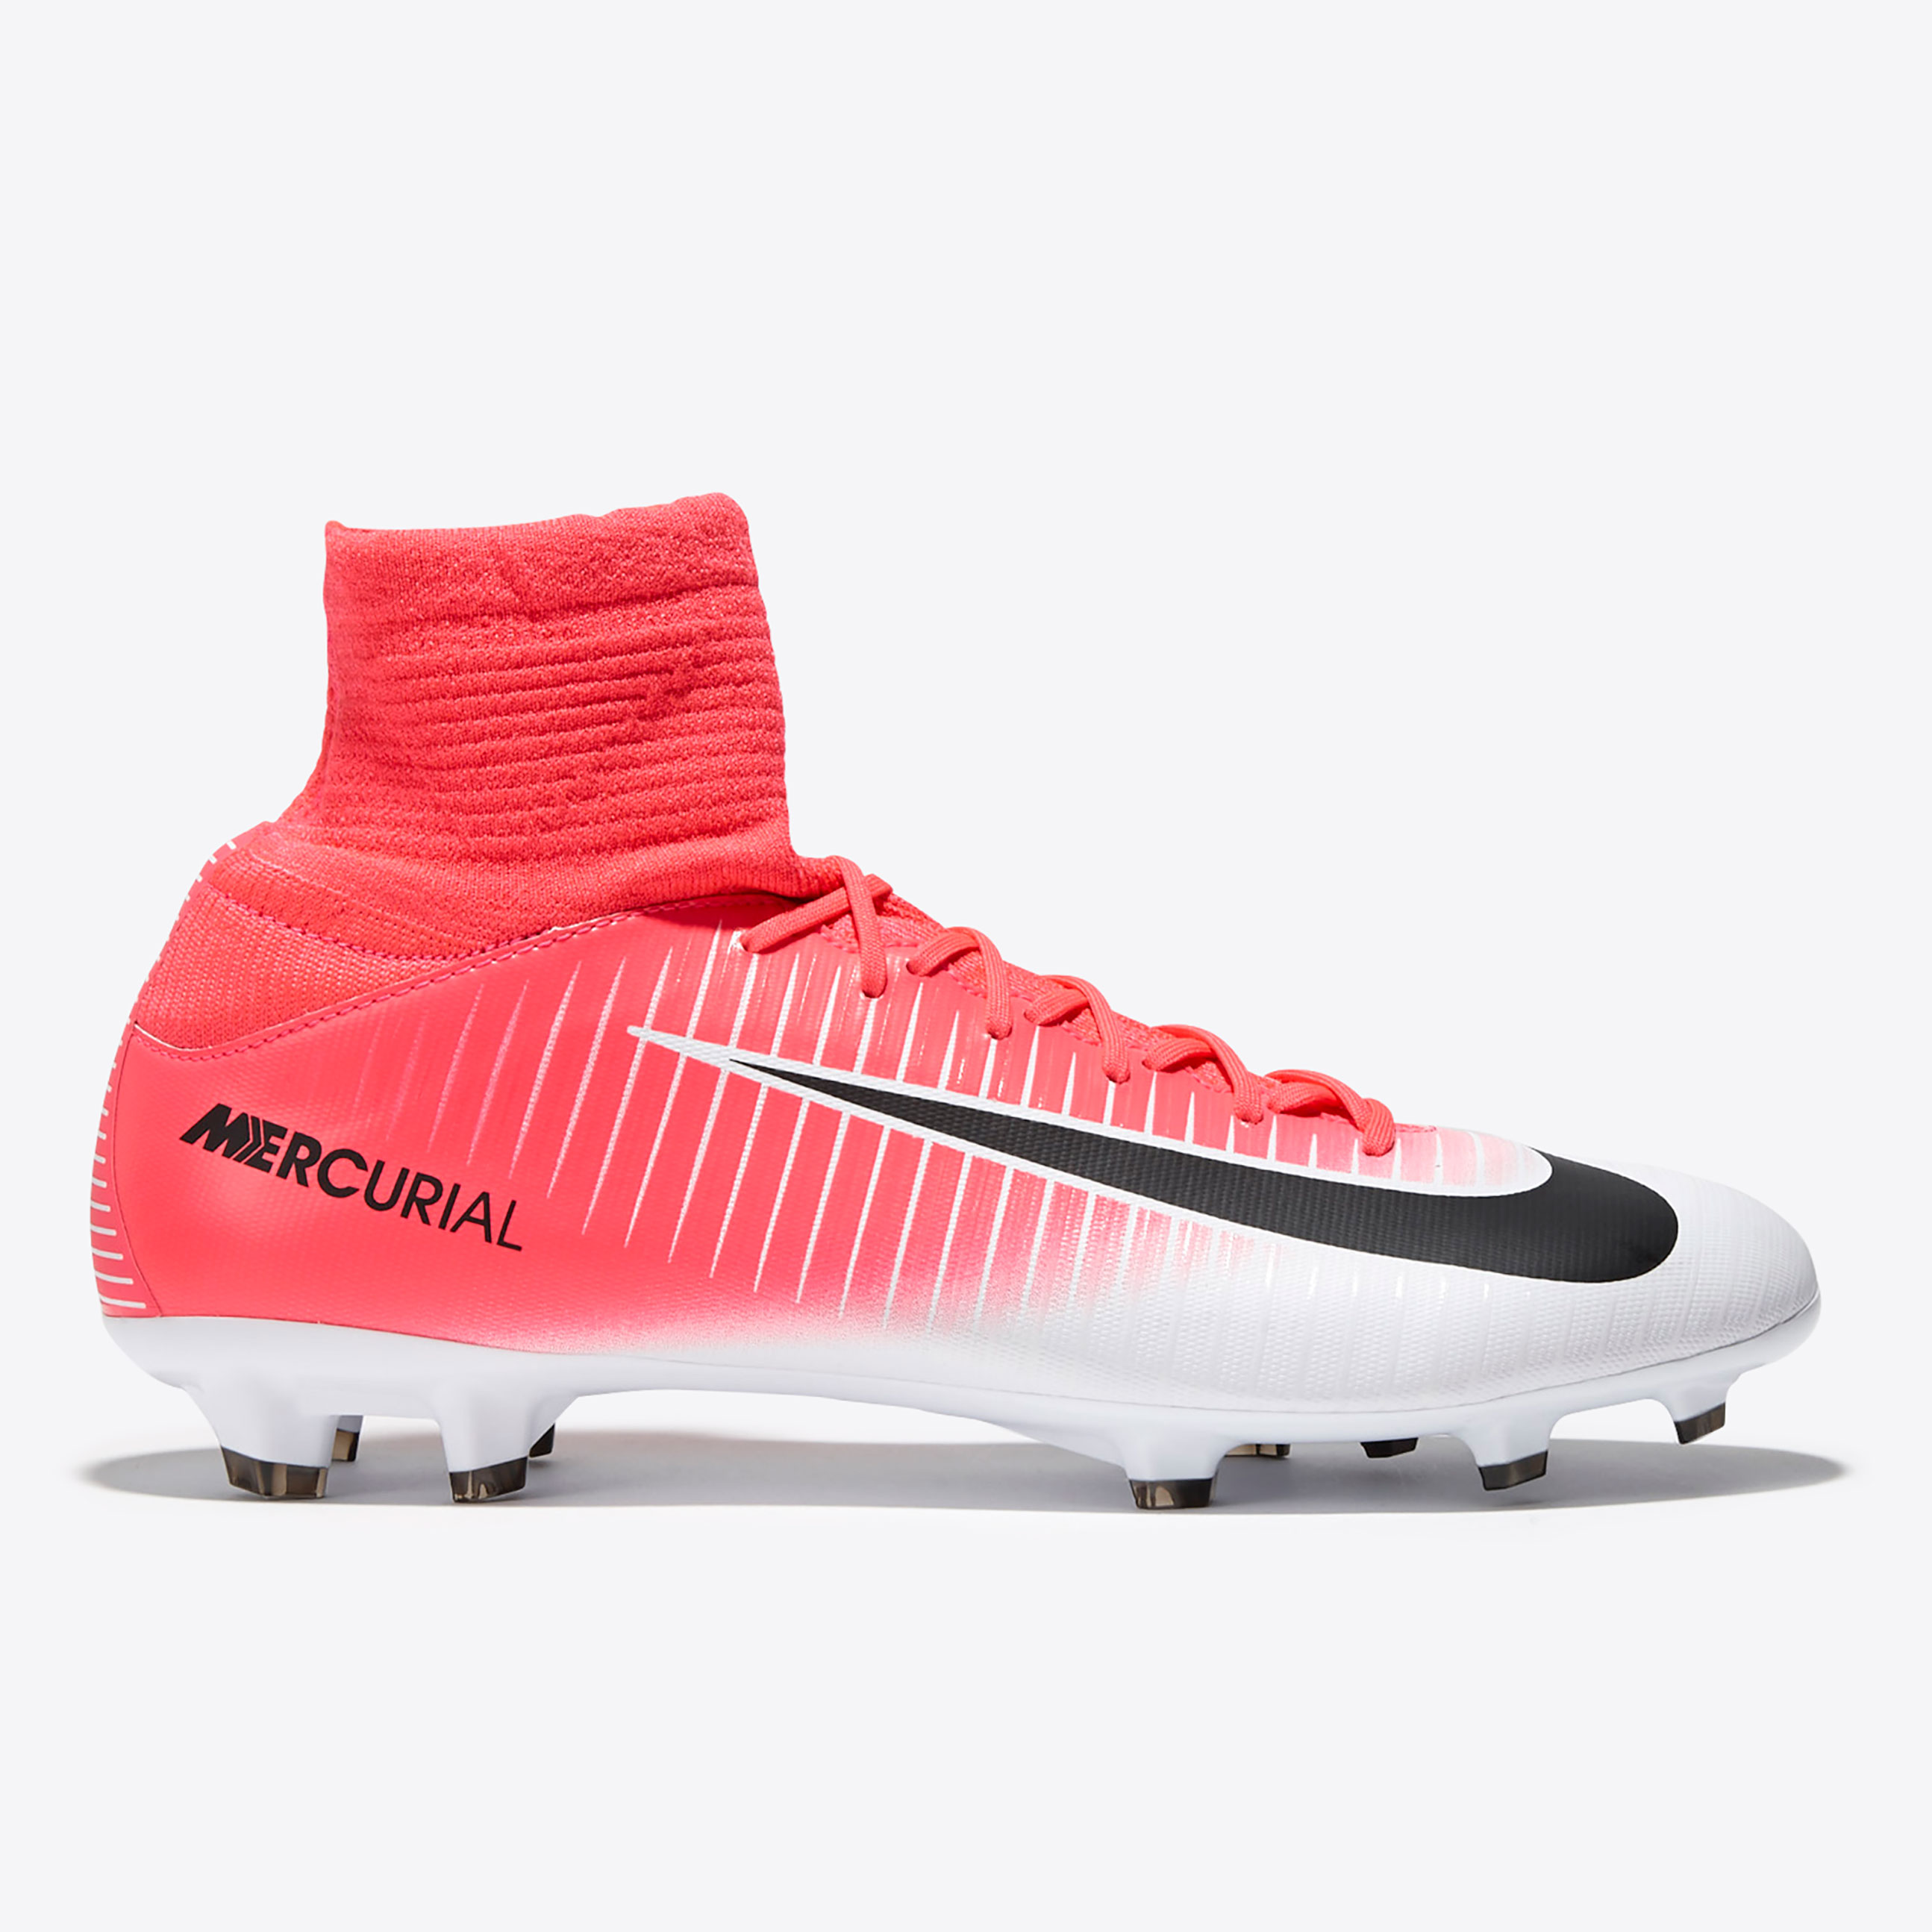 Nike Mercurial Superfly V FG Racer Pink/Blac